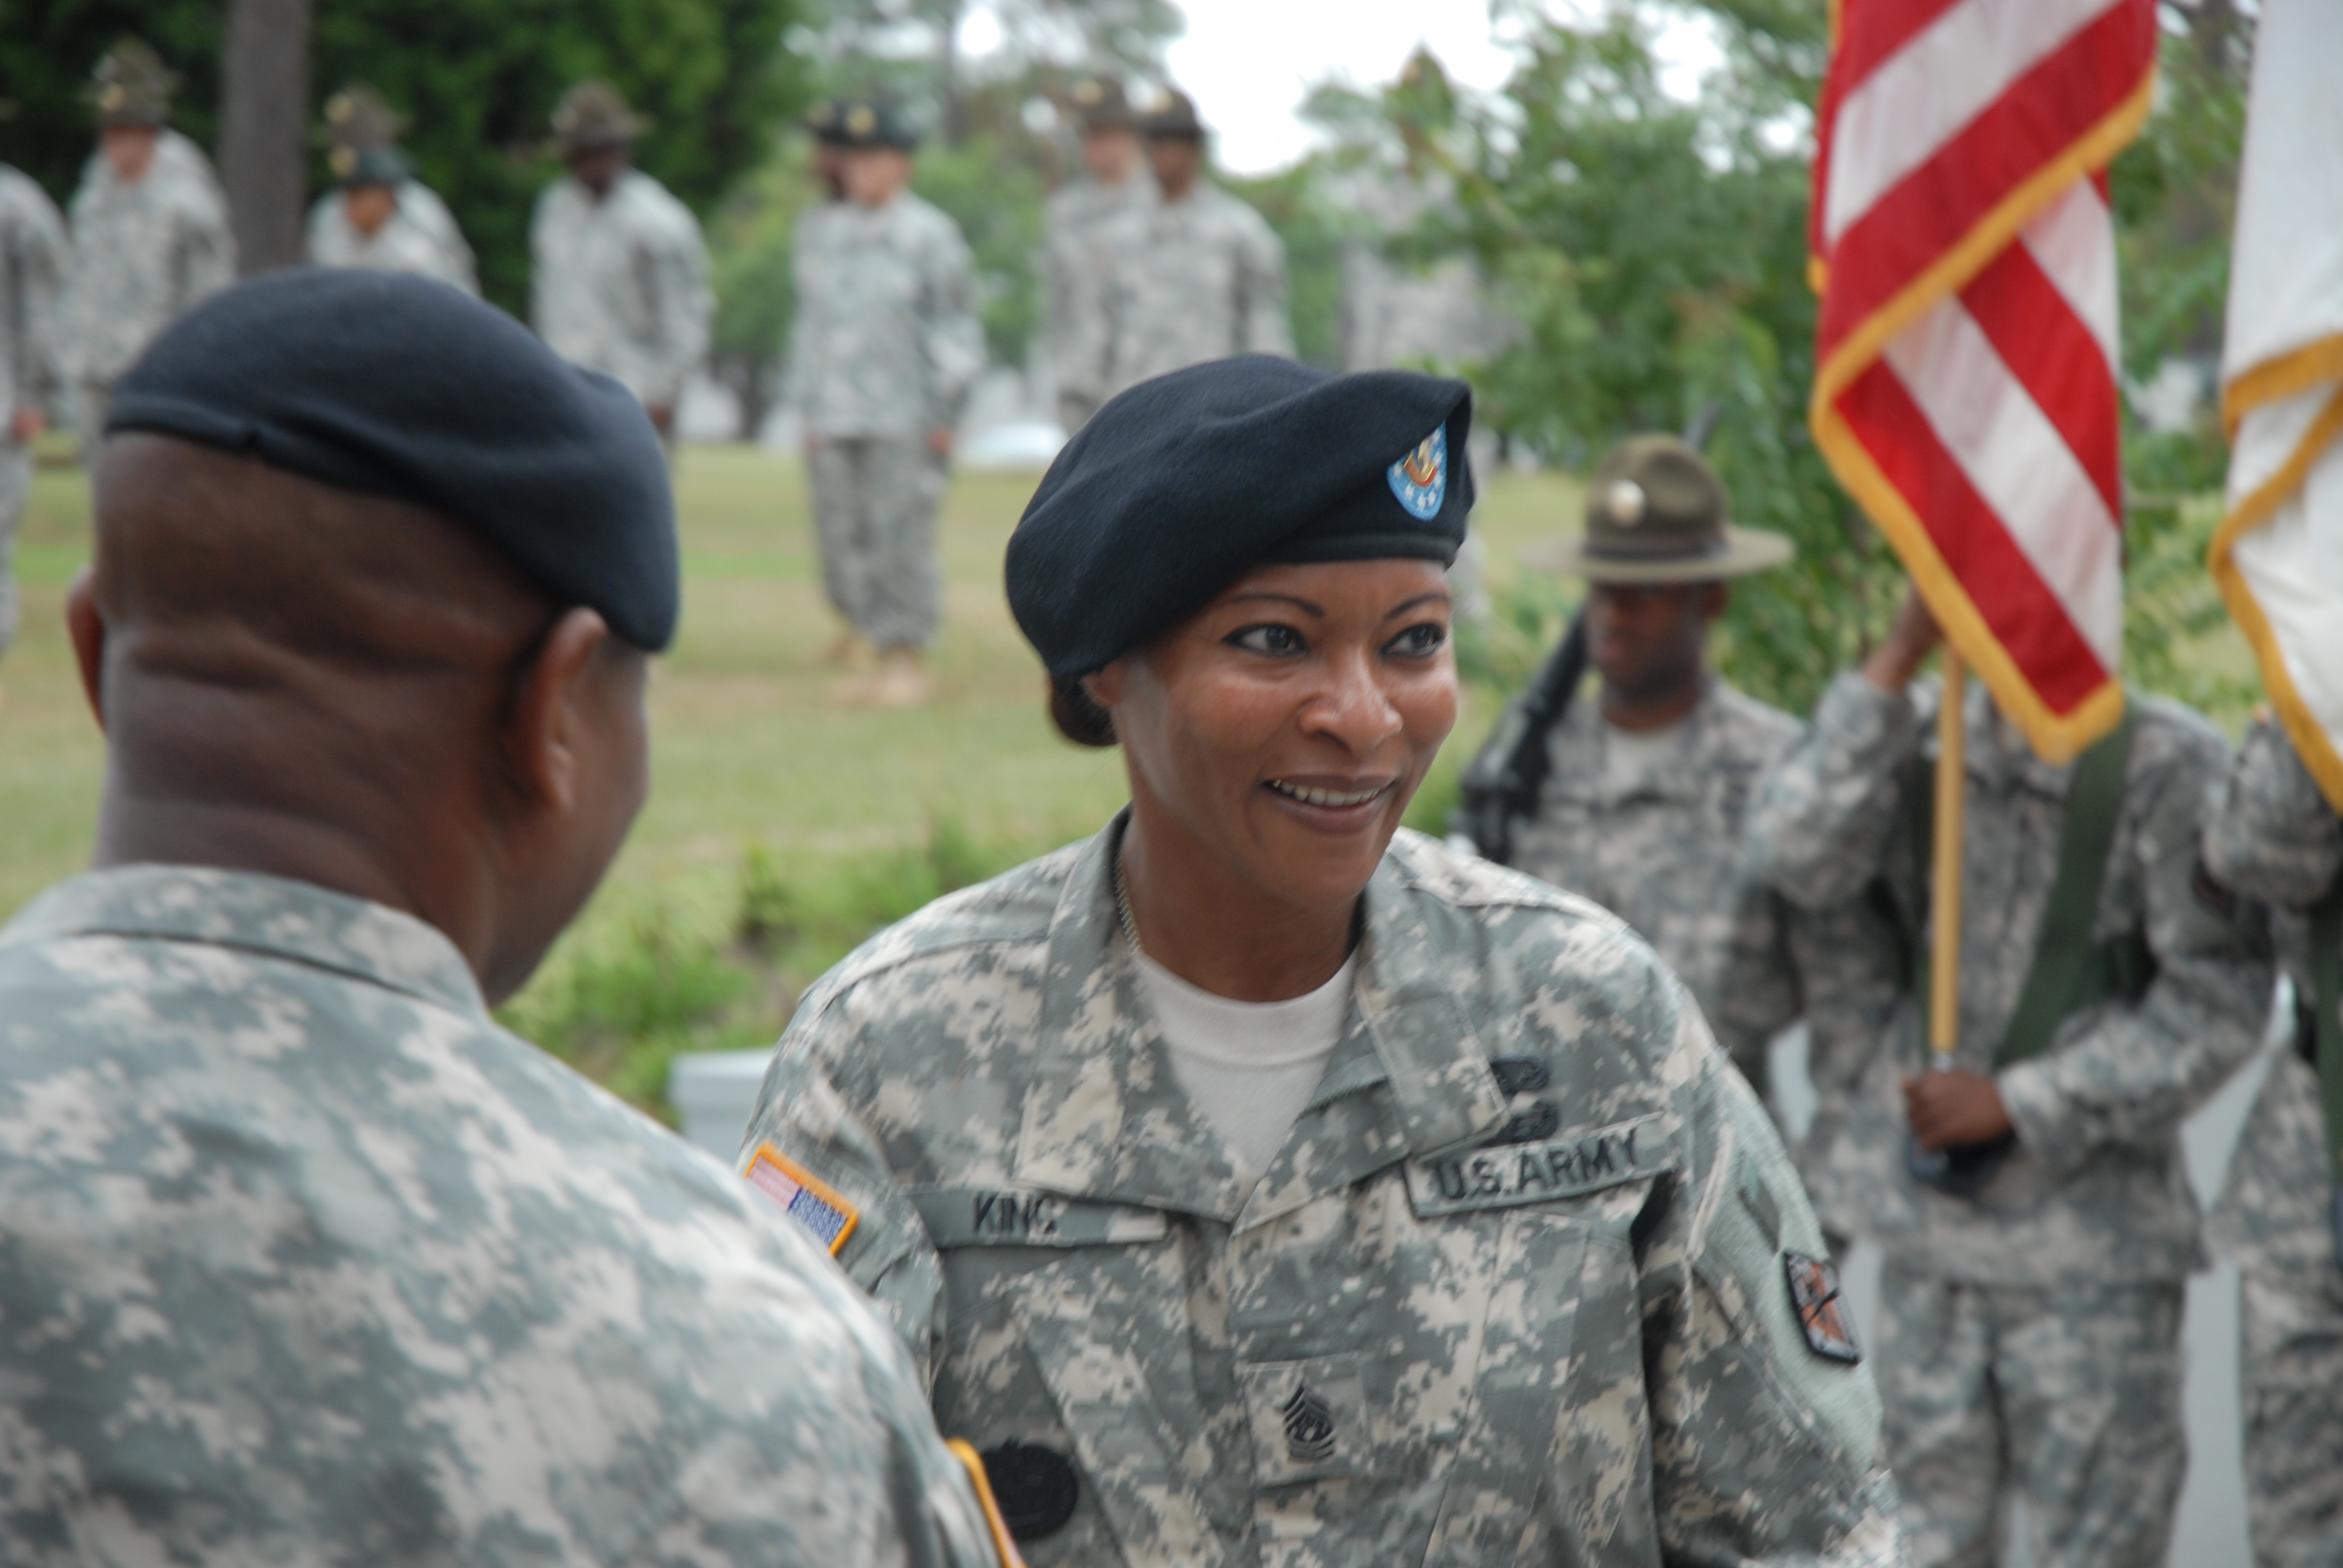 Command Sergeant Major Teresa King at the change of responsibility ceremony taking over as commandant of the Drill Sergeant School, September 2009